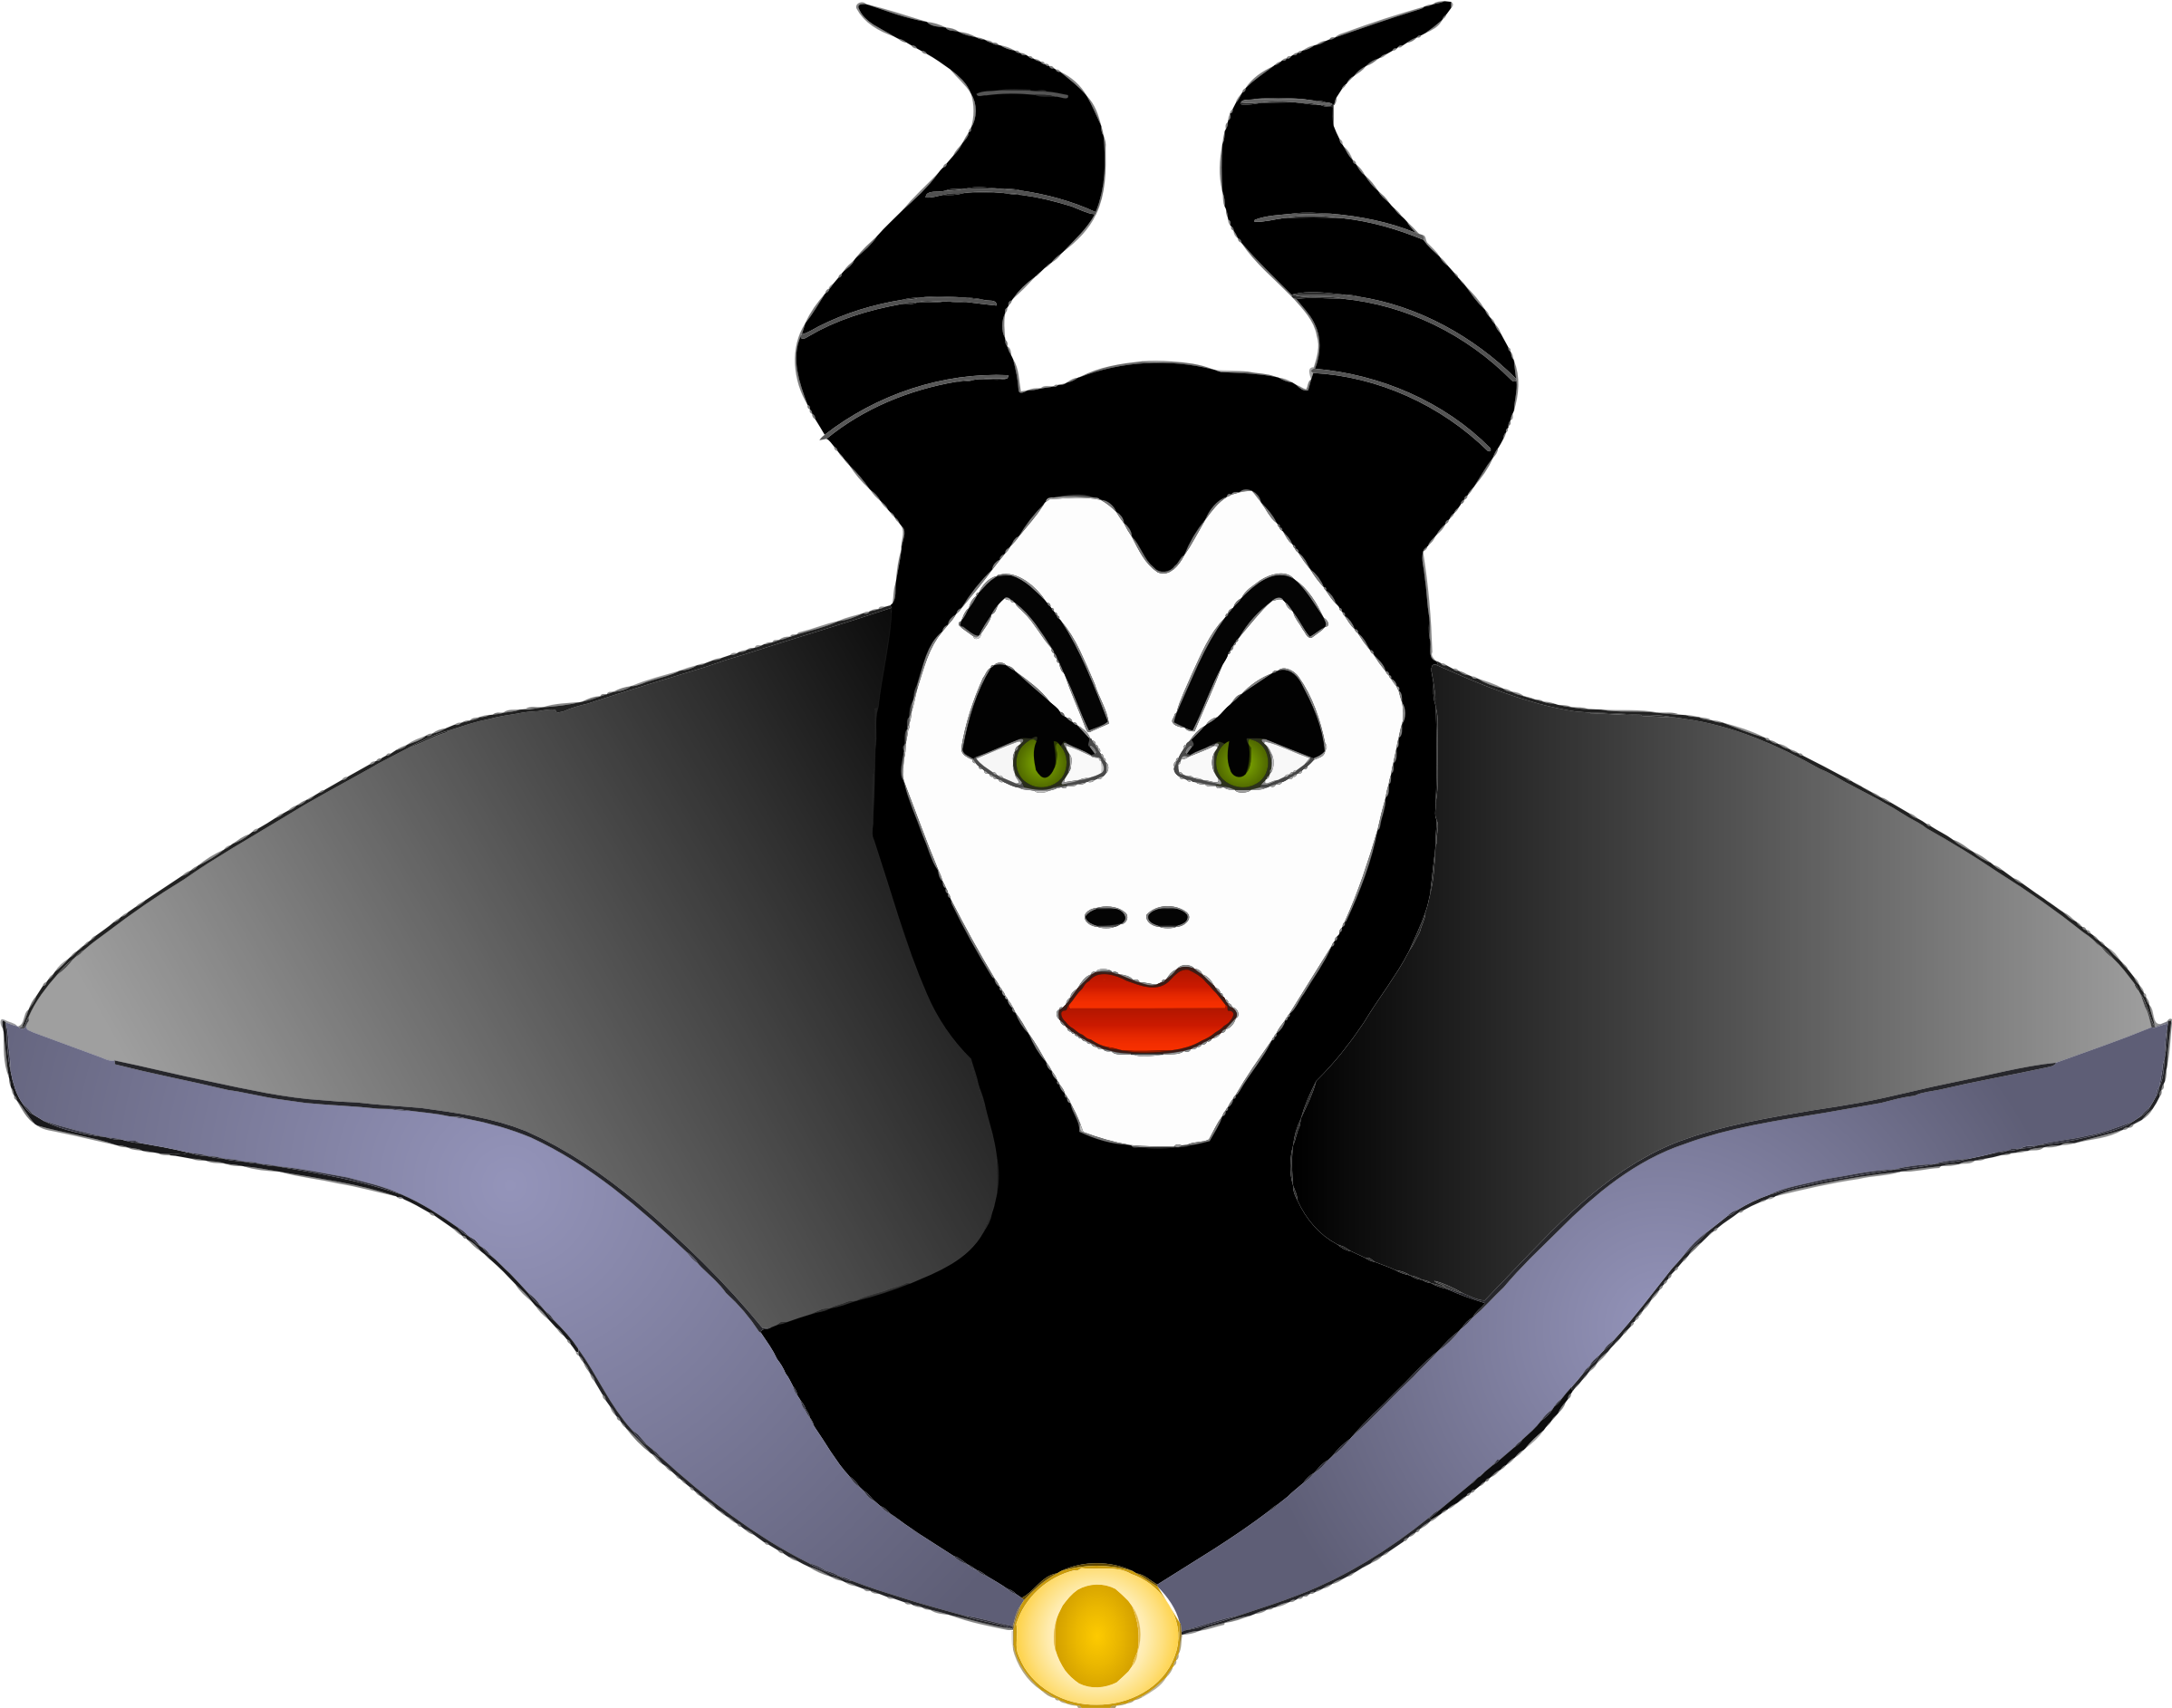 Maleficent by GDJ